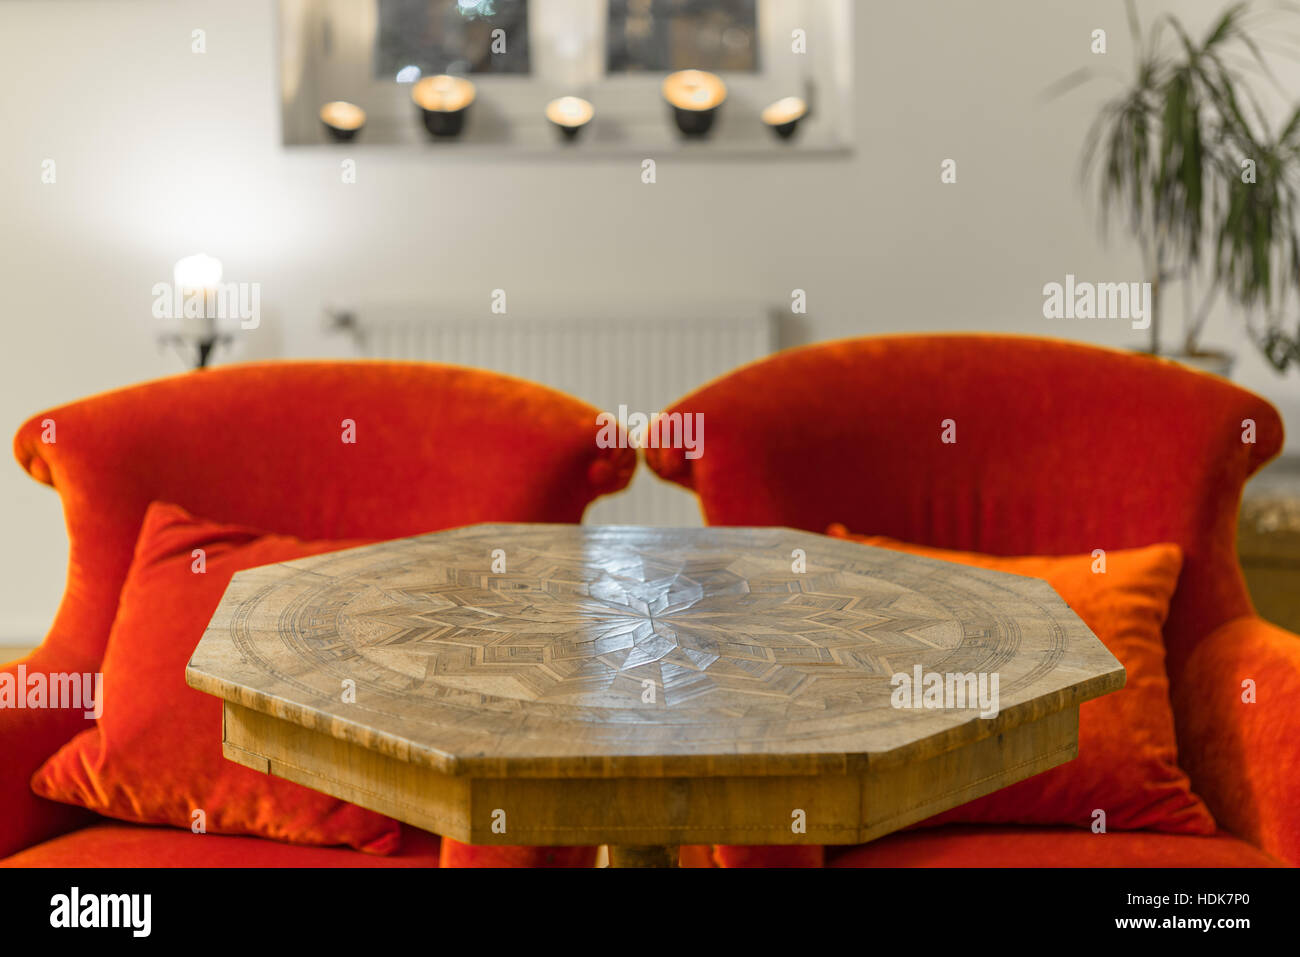 Antique side table with intarsia and red chair - Stock Image